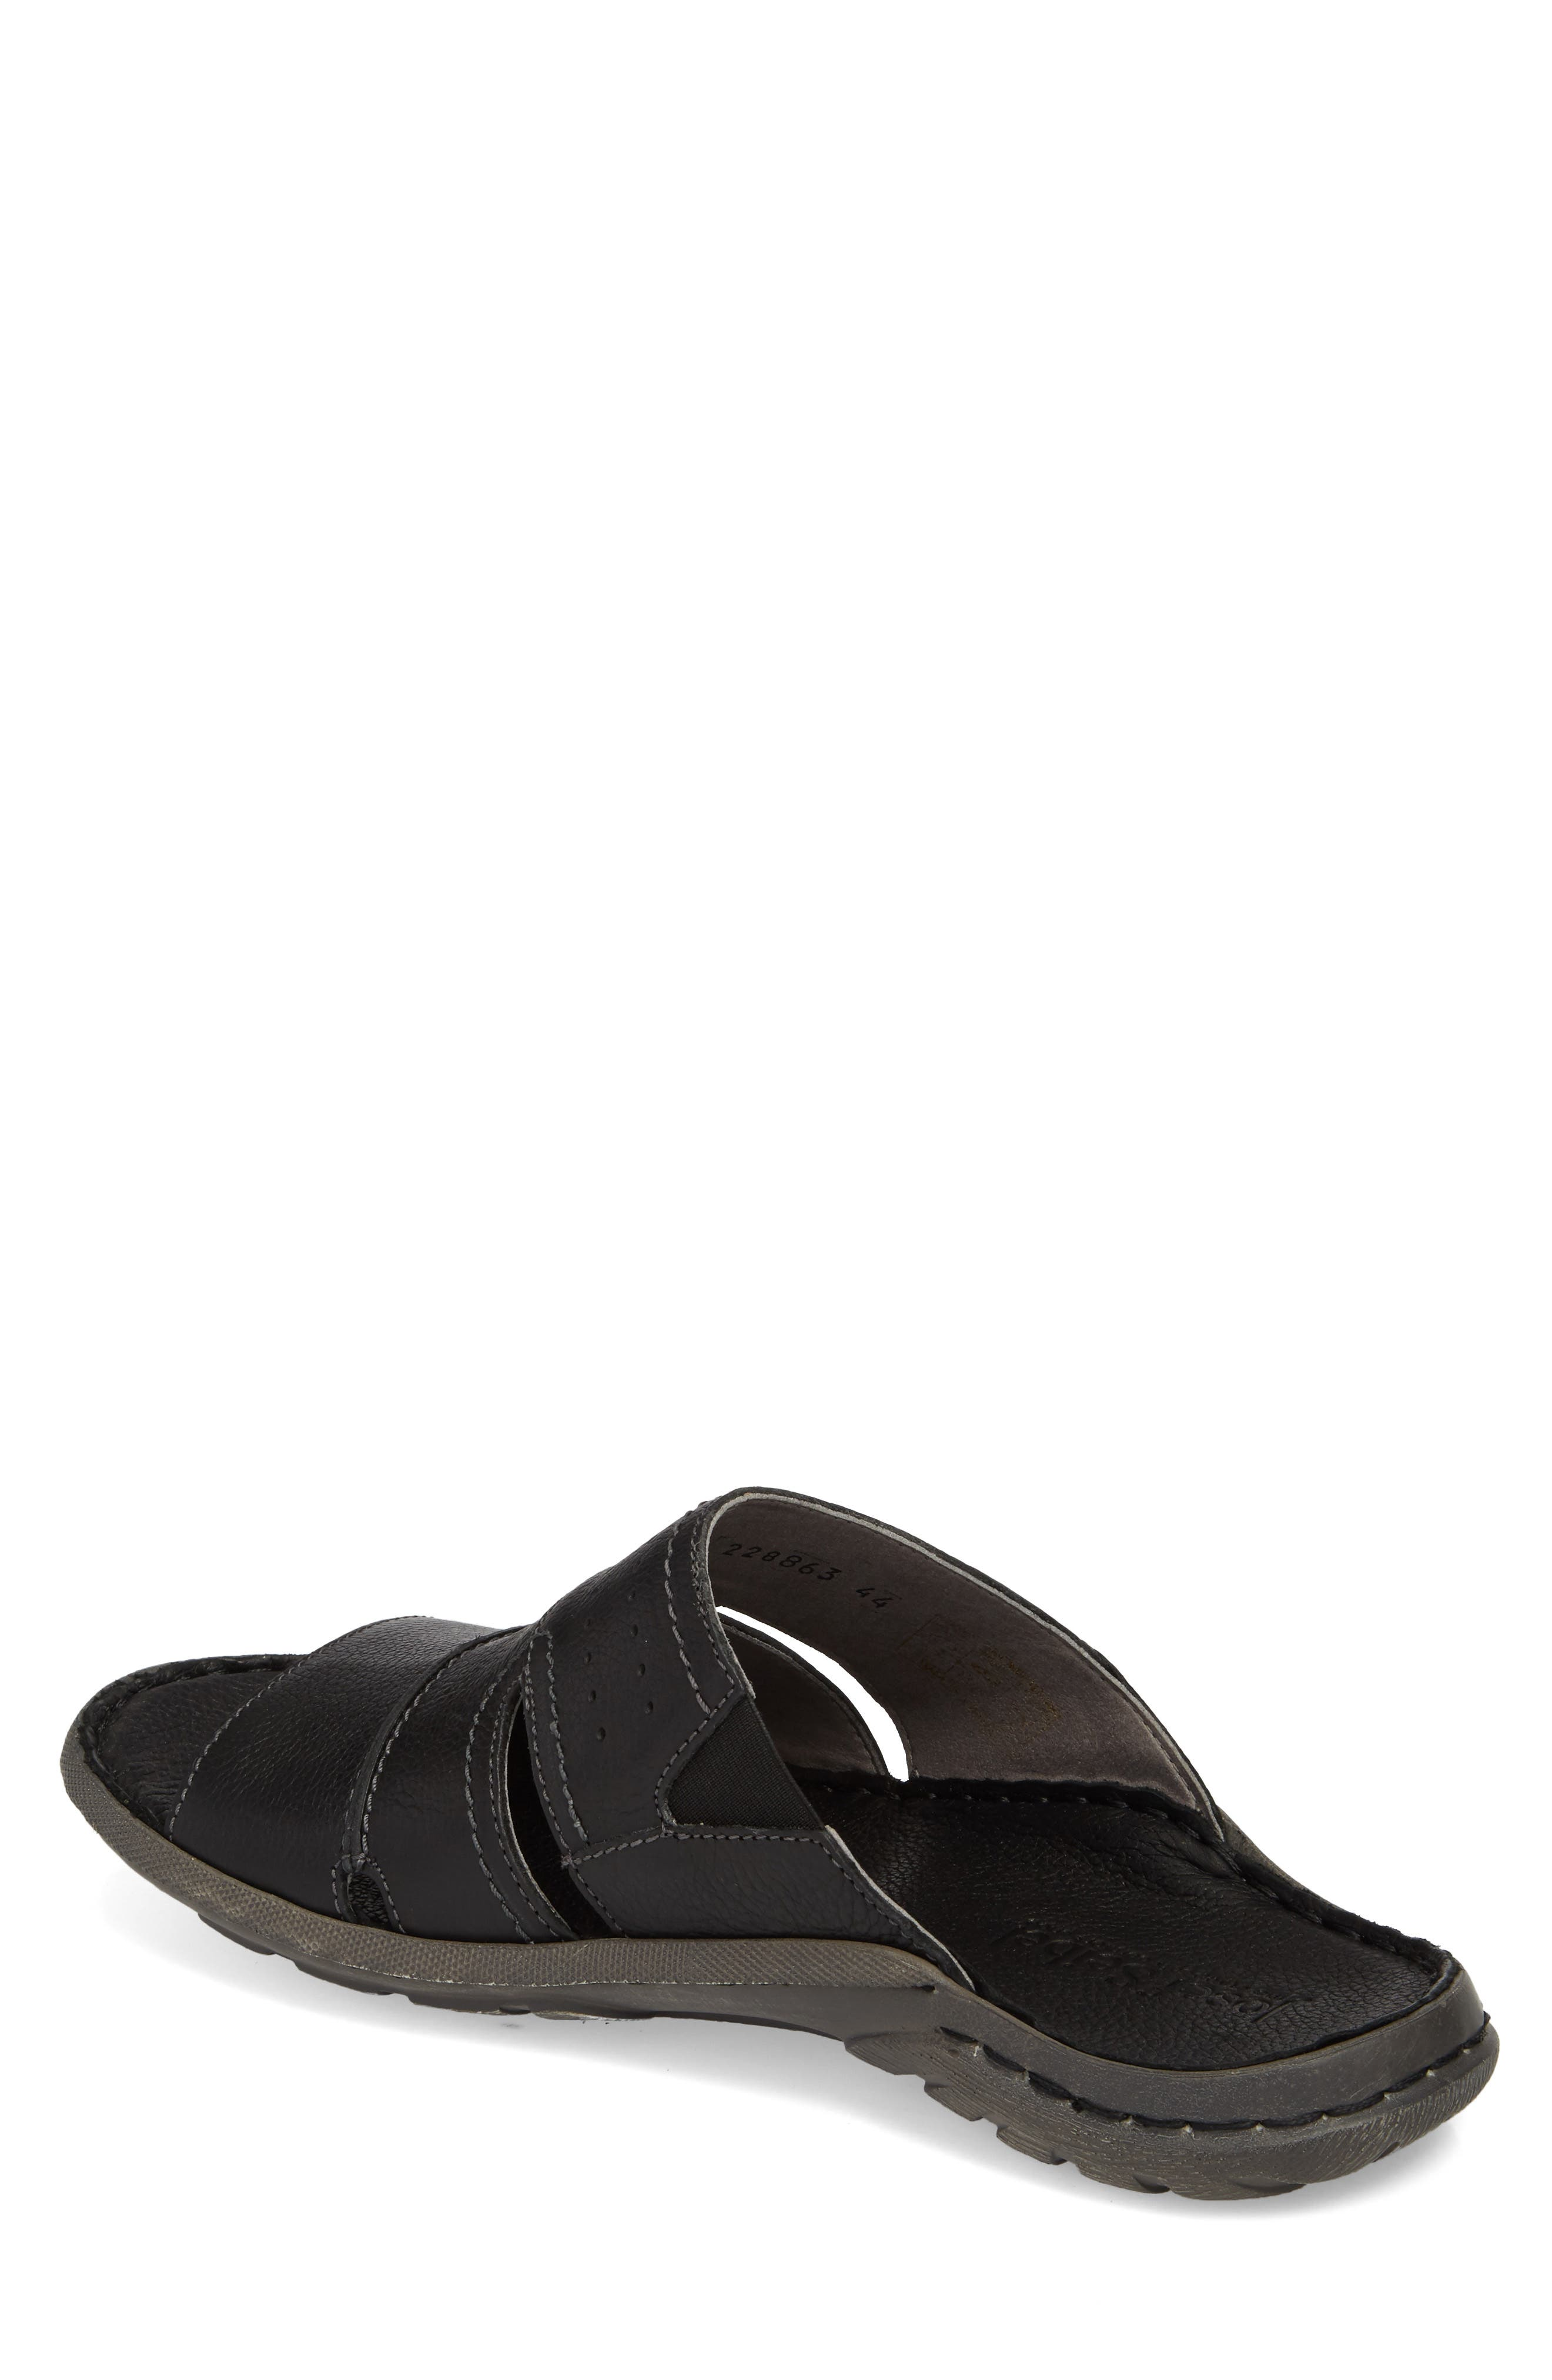 Logan Slide Sandal,                             Alternate thumbnail 2, color,                             004